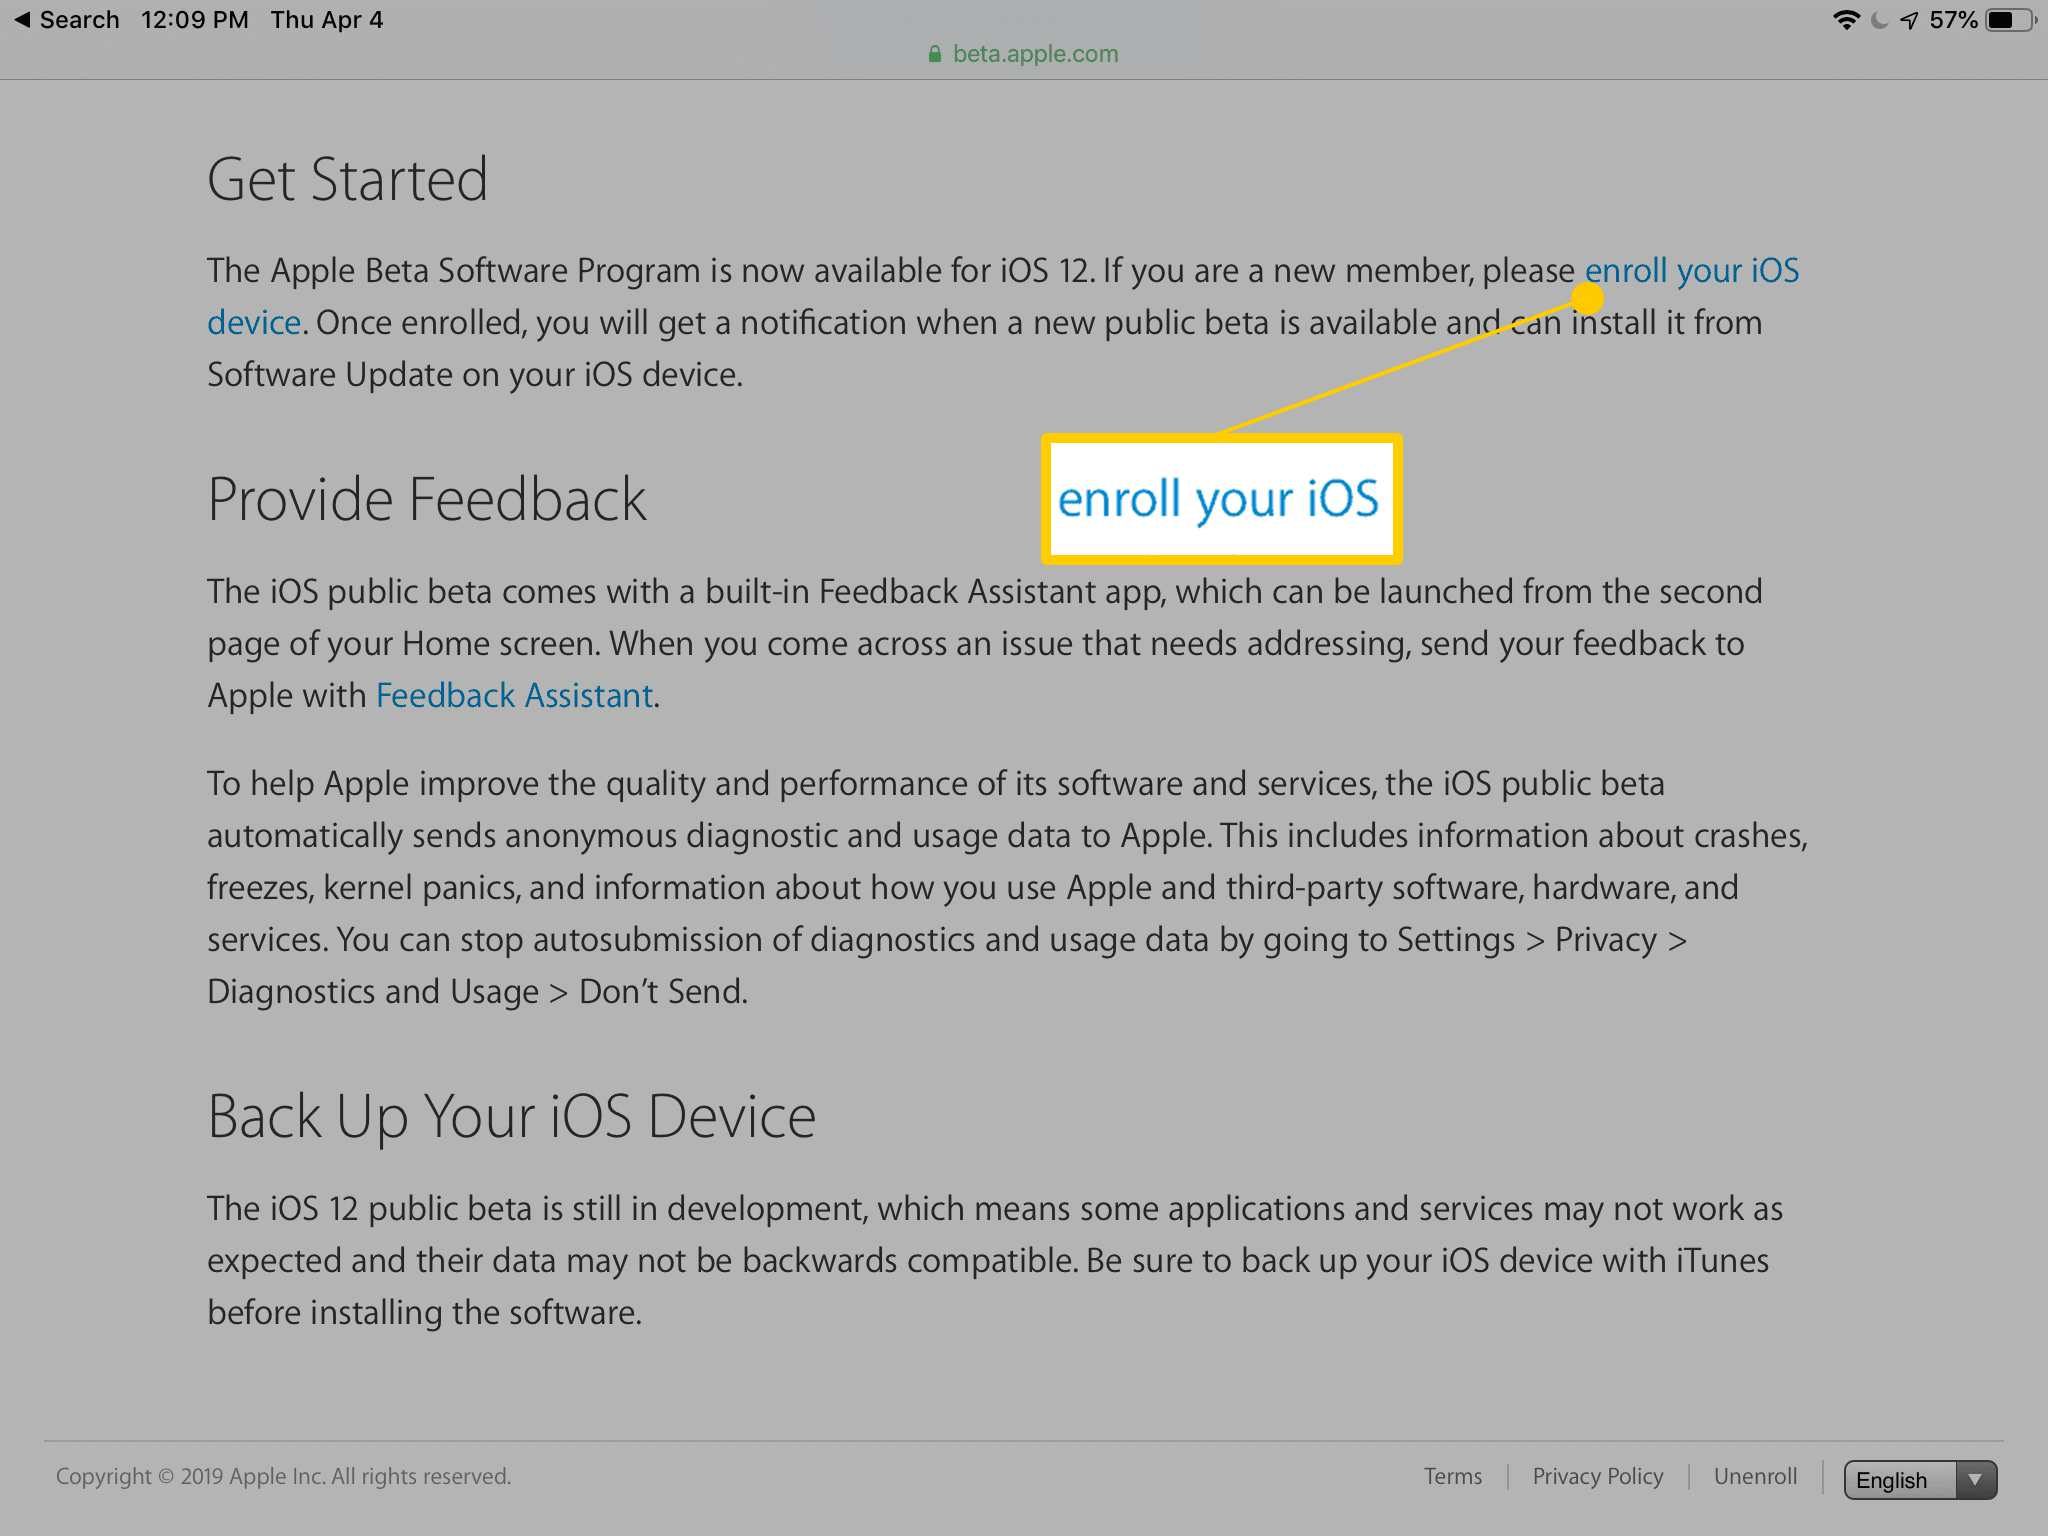 How to Sign Up for Apple's iOS Public Beta Program